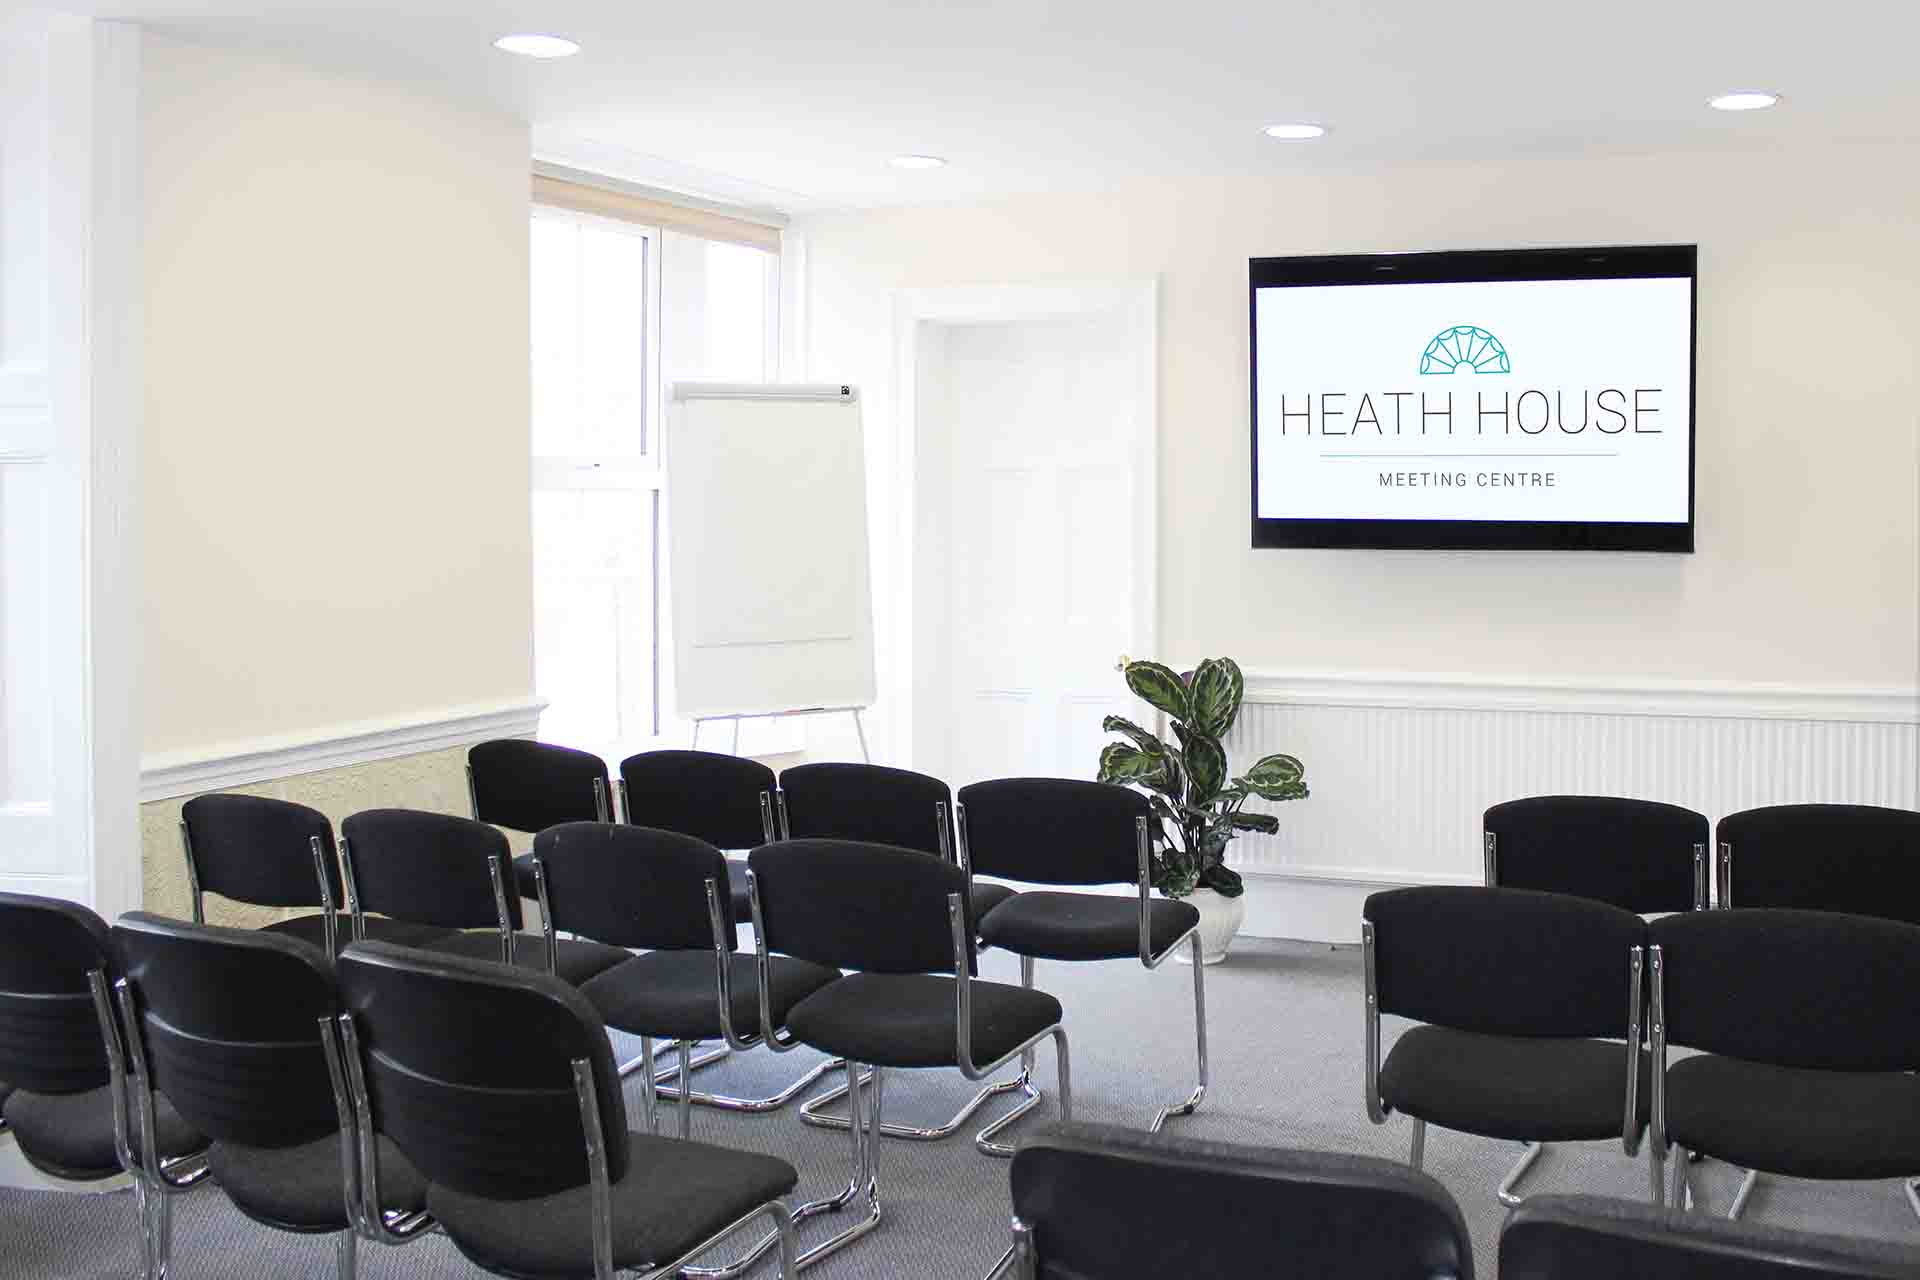 Bromley meeting room - Theatre style - Heath House Conference Centre, Uttoxeter, Staffordshire